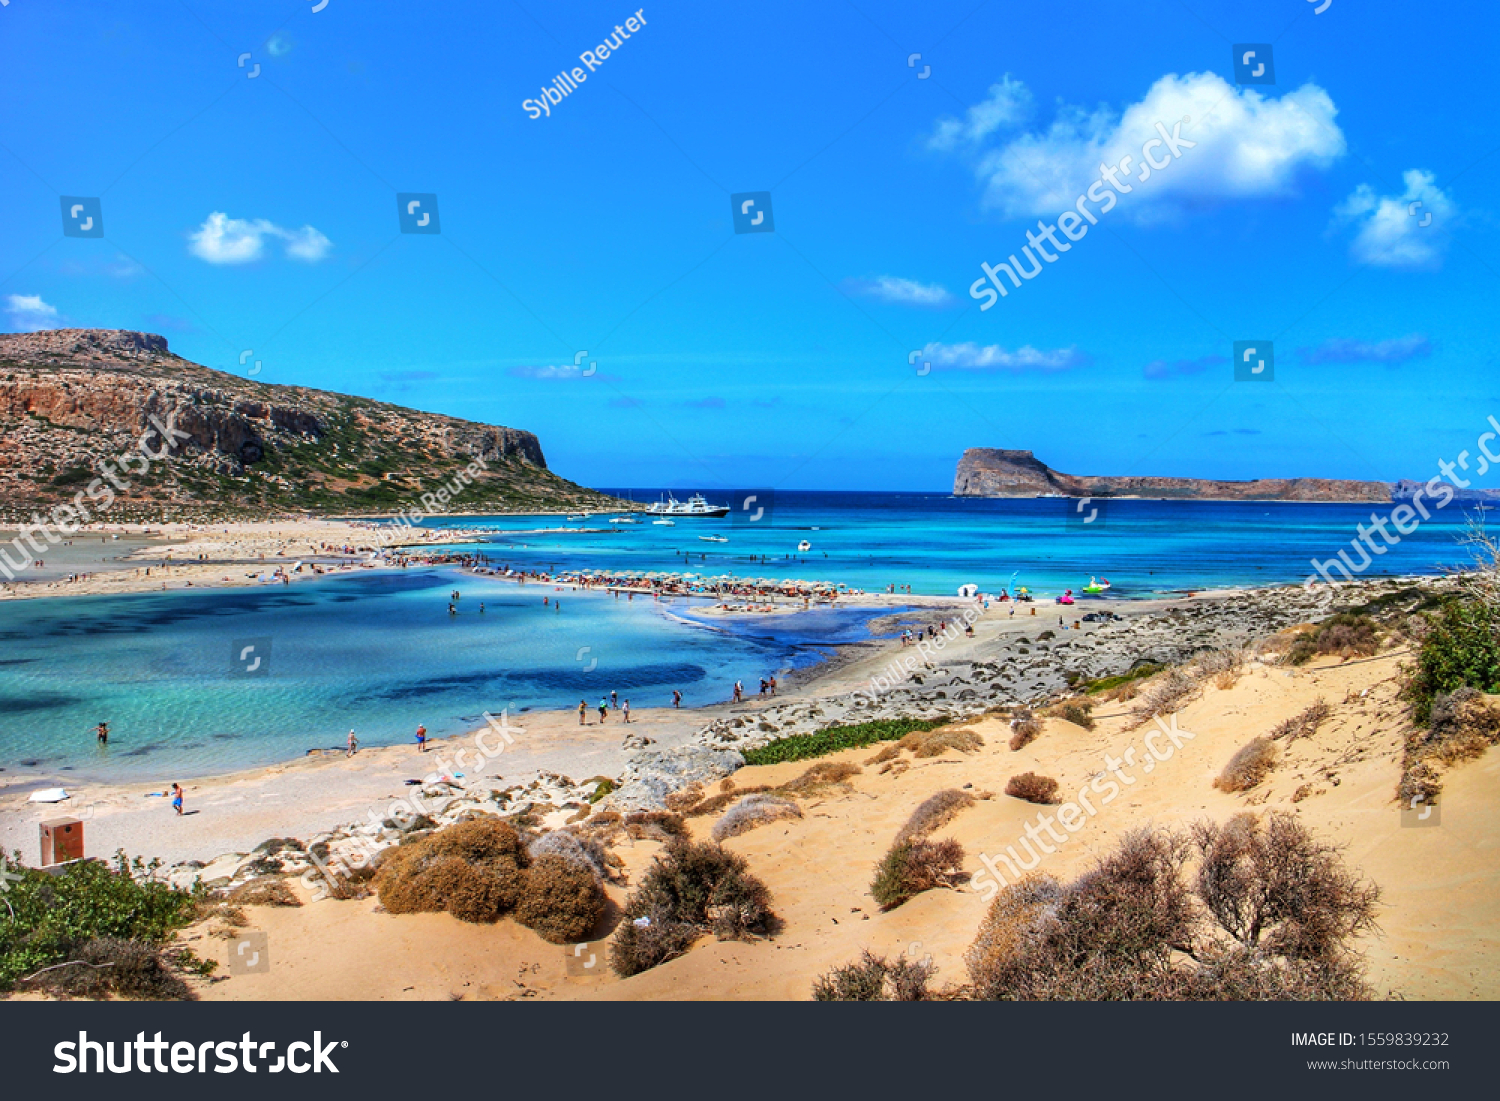 stock-photo-view-of-balos-beach-and-the-